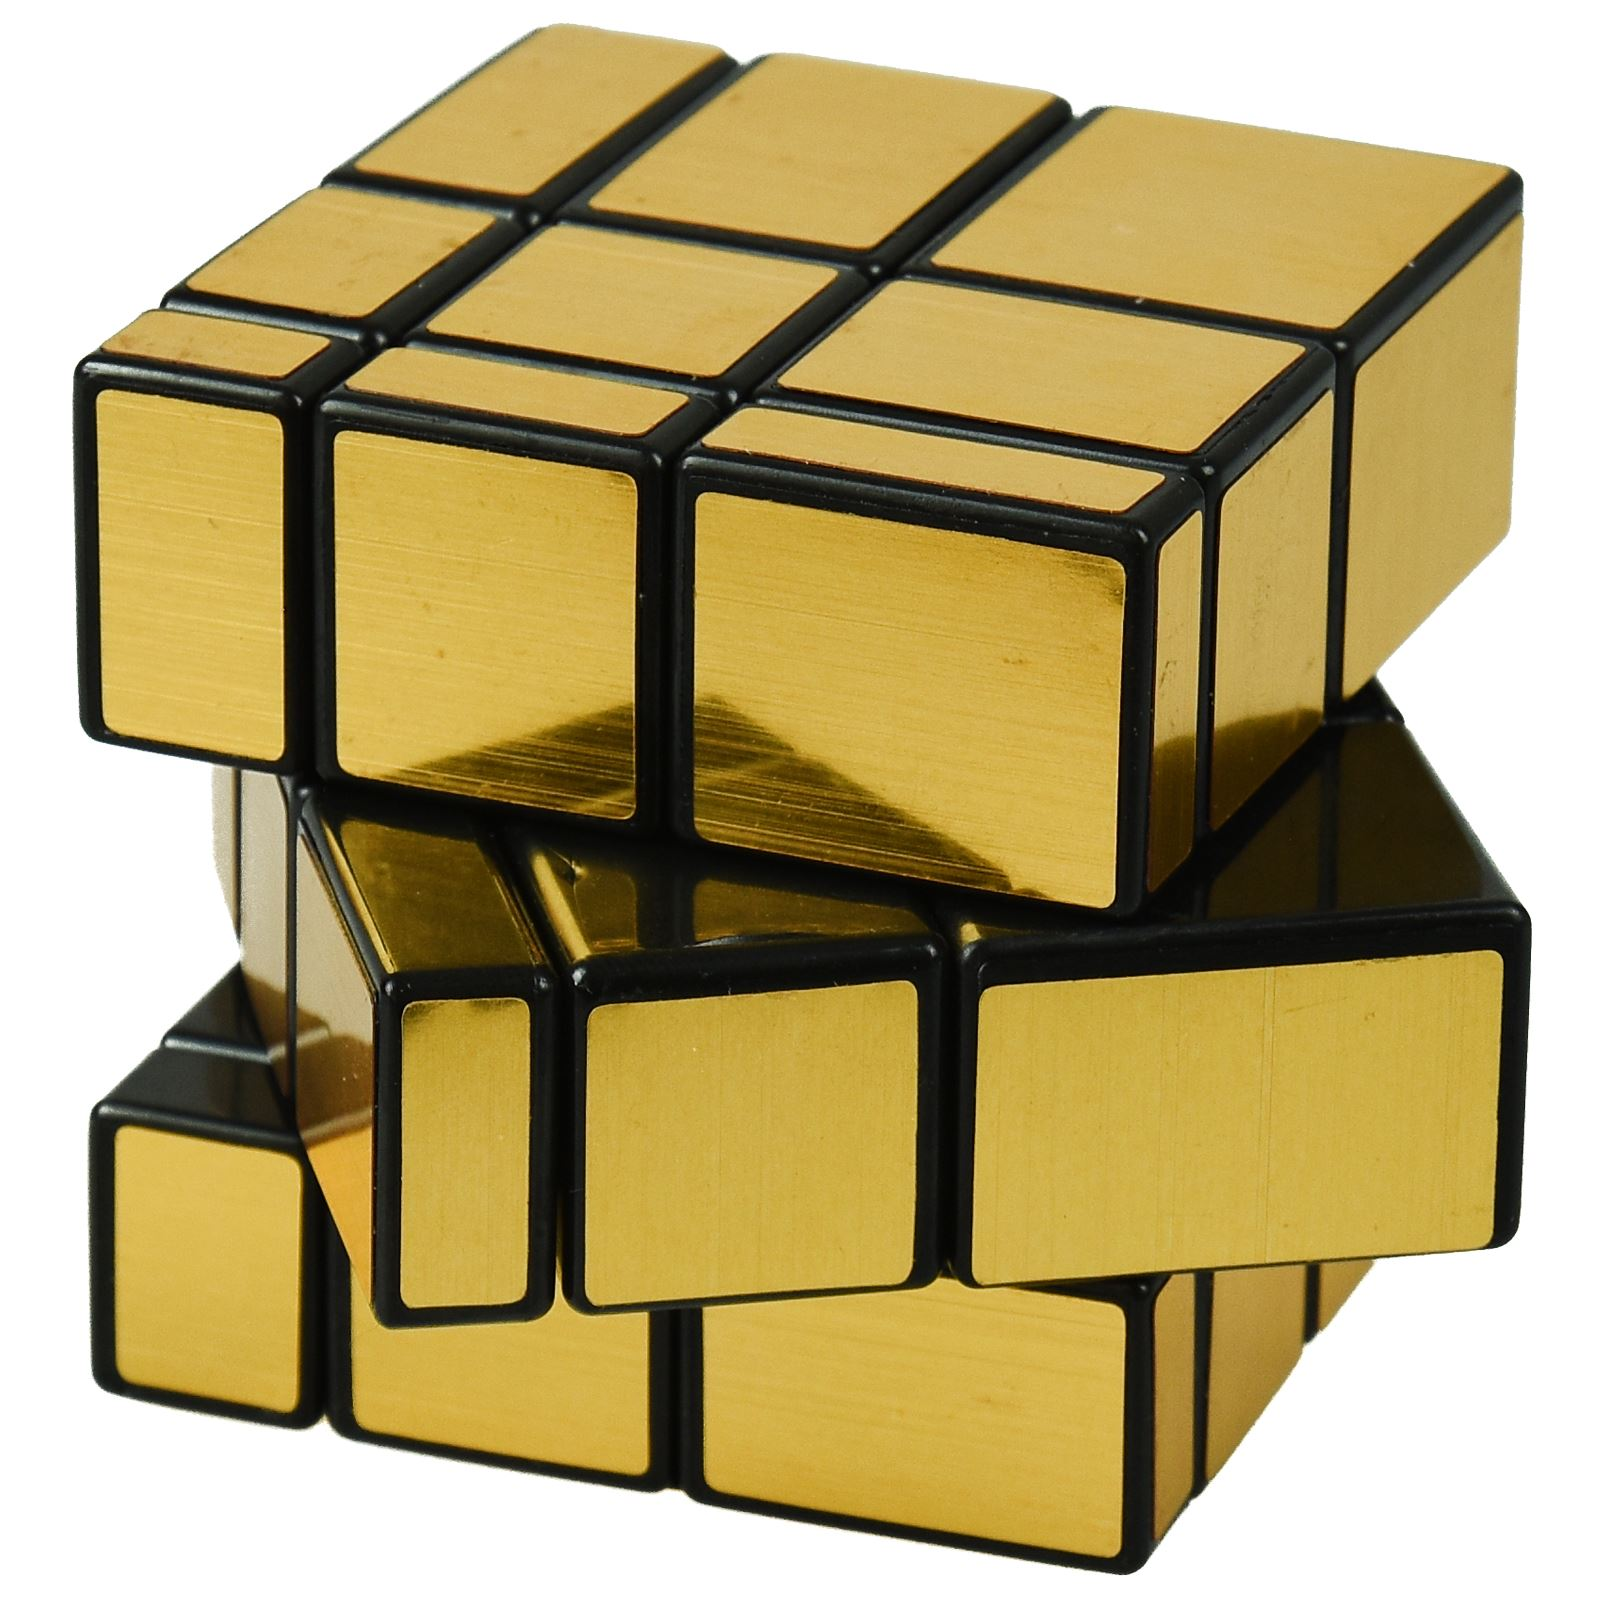 3x3-Miroir-Cube-Puzzle-Mind-Game-Brain-Teasers-Magic-scies-sauteuses-enfants-jouet-adulte-cadeau miniature 3